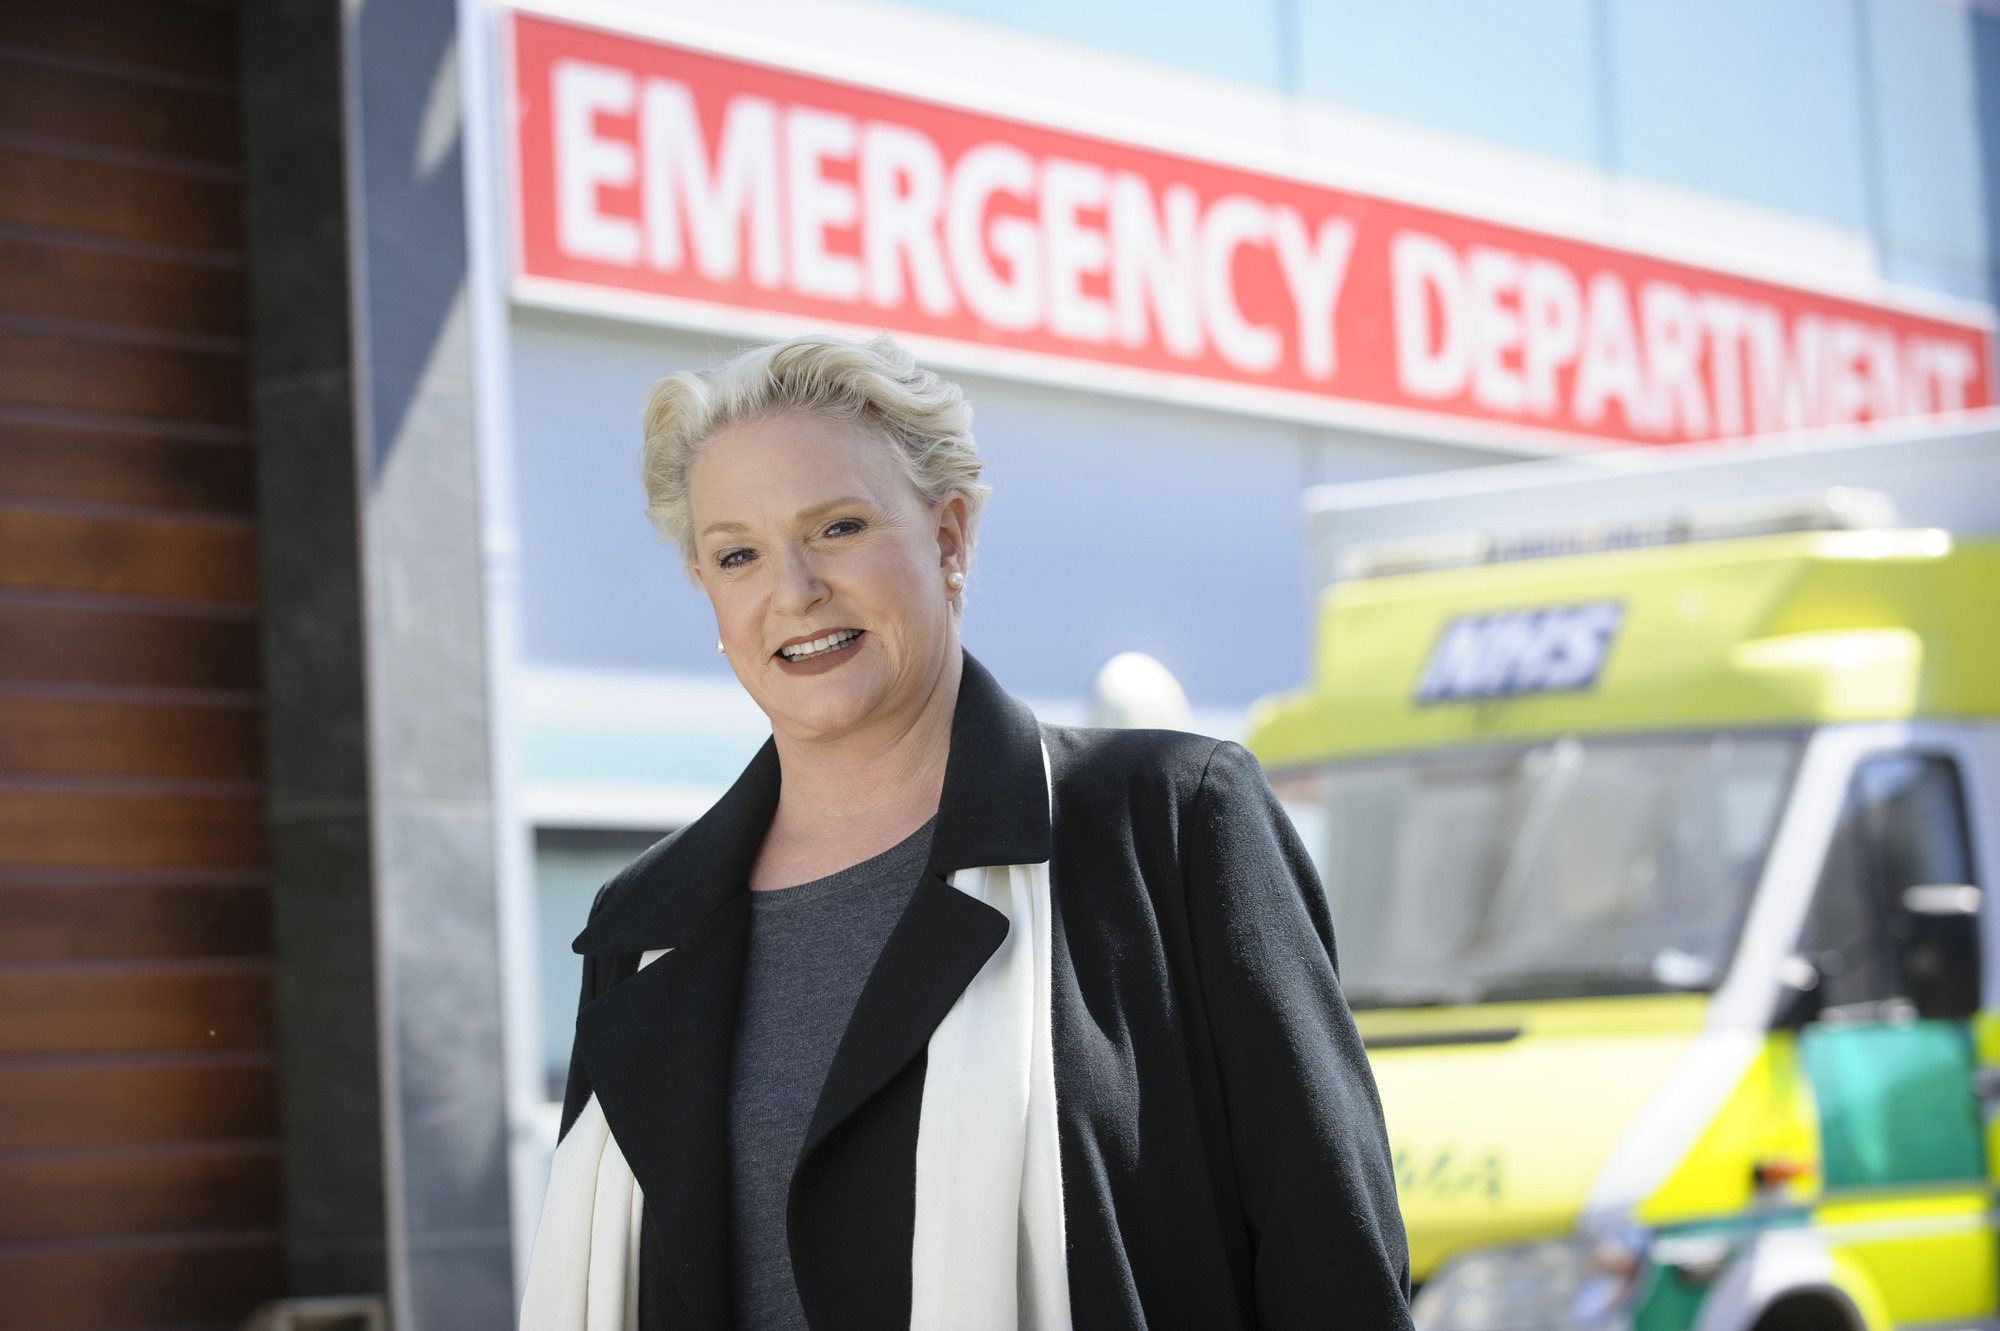 Casualty review with spoilers: Zsa Zsa to the rescue